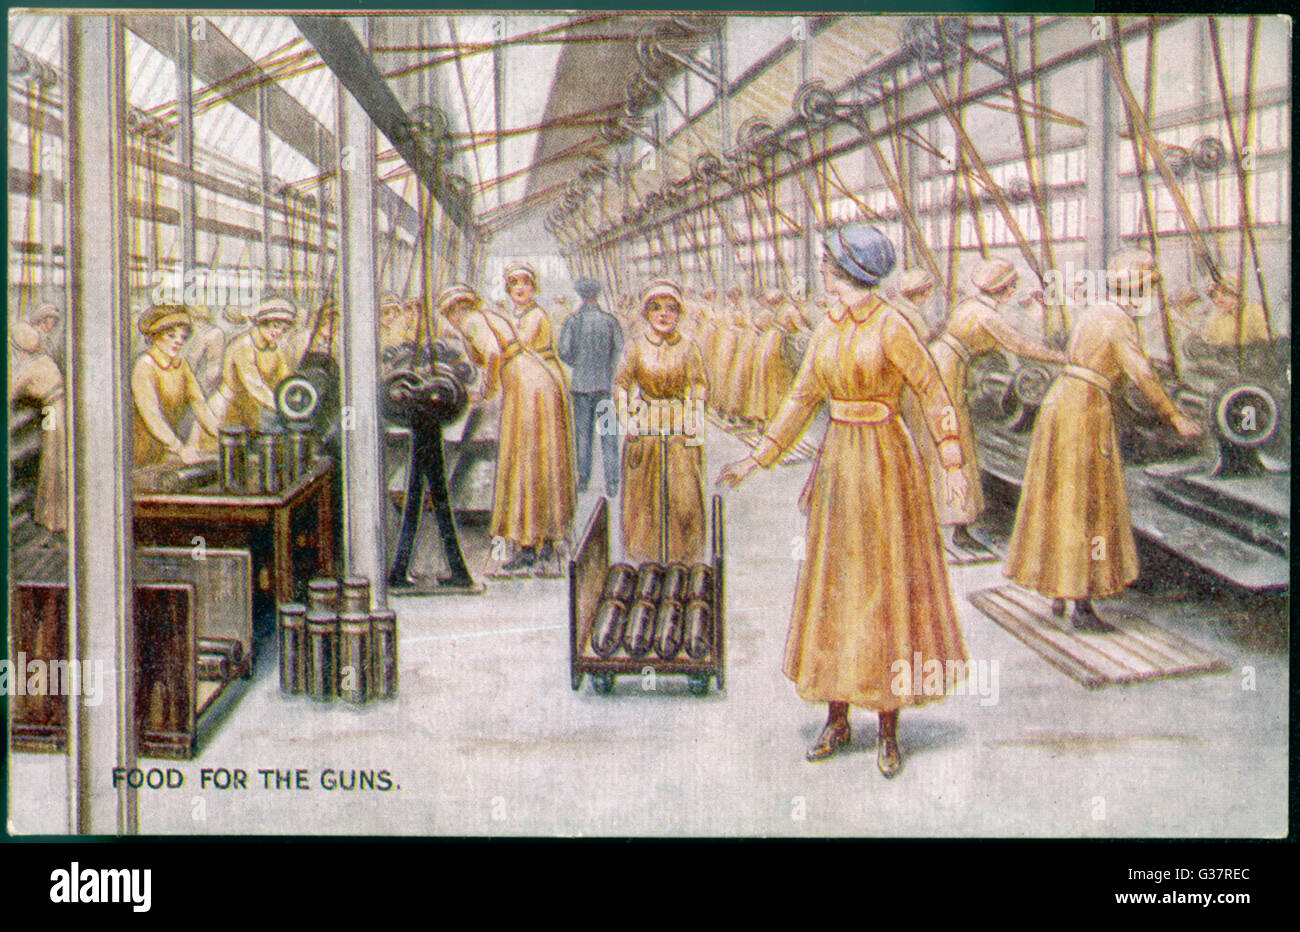 BRITISH WOMEN IN WWIIMUNITIONS FACTORY SHELLS PHOTO REAL CANVASART PRINT